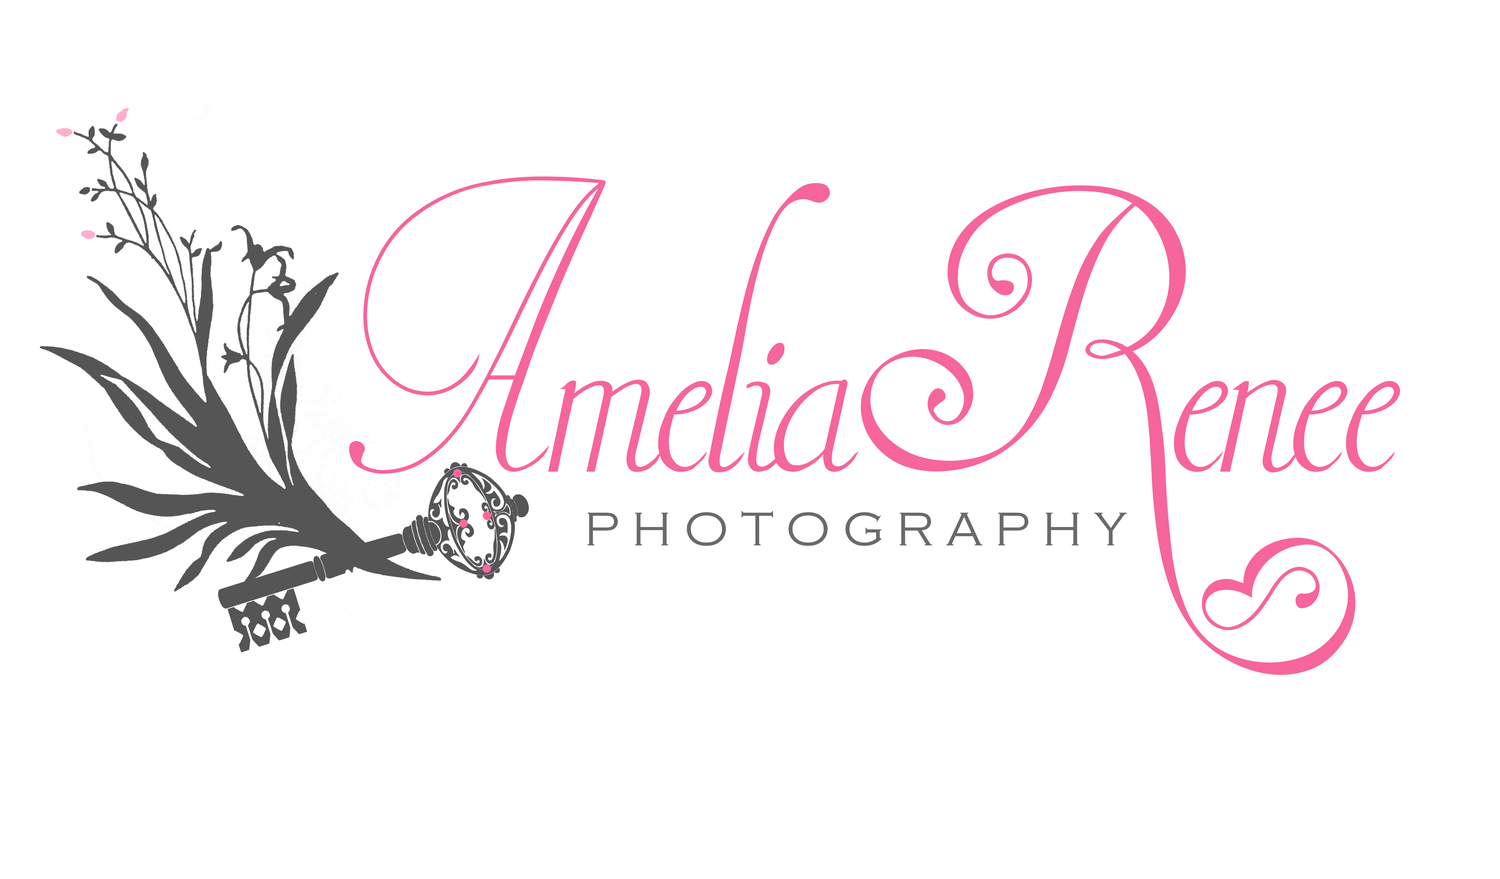 AmeliaRenee Photography